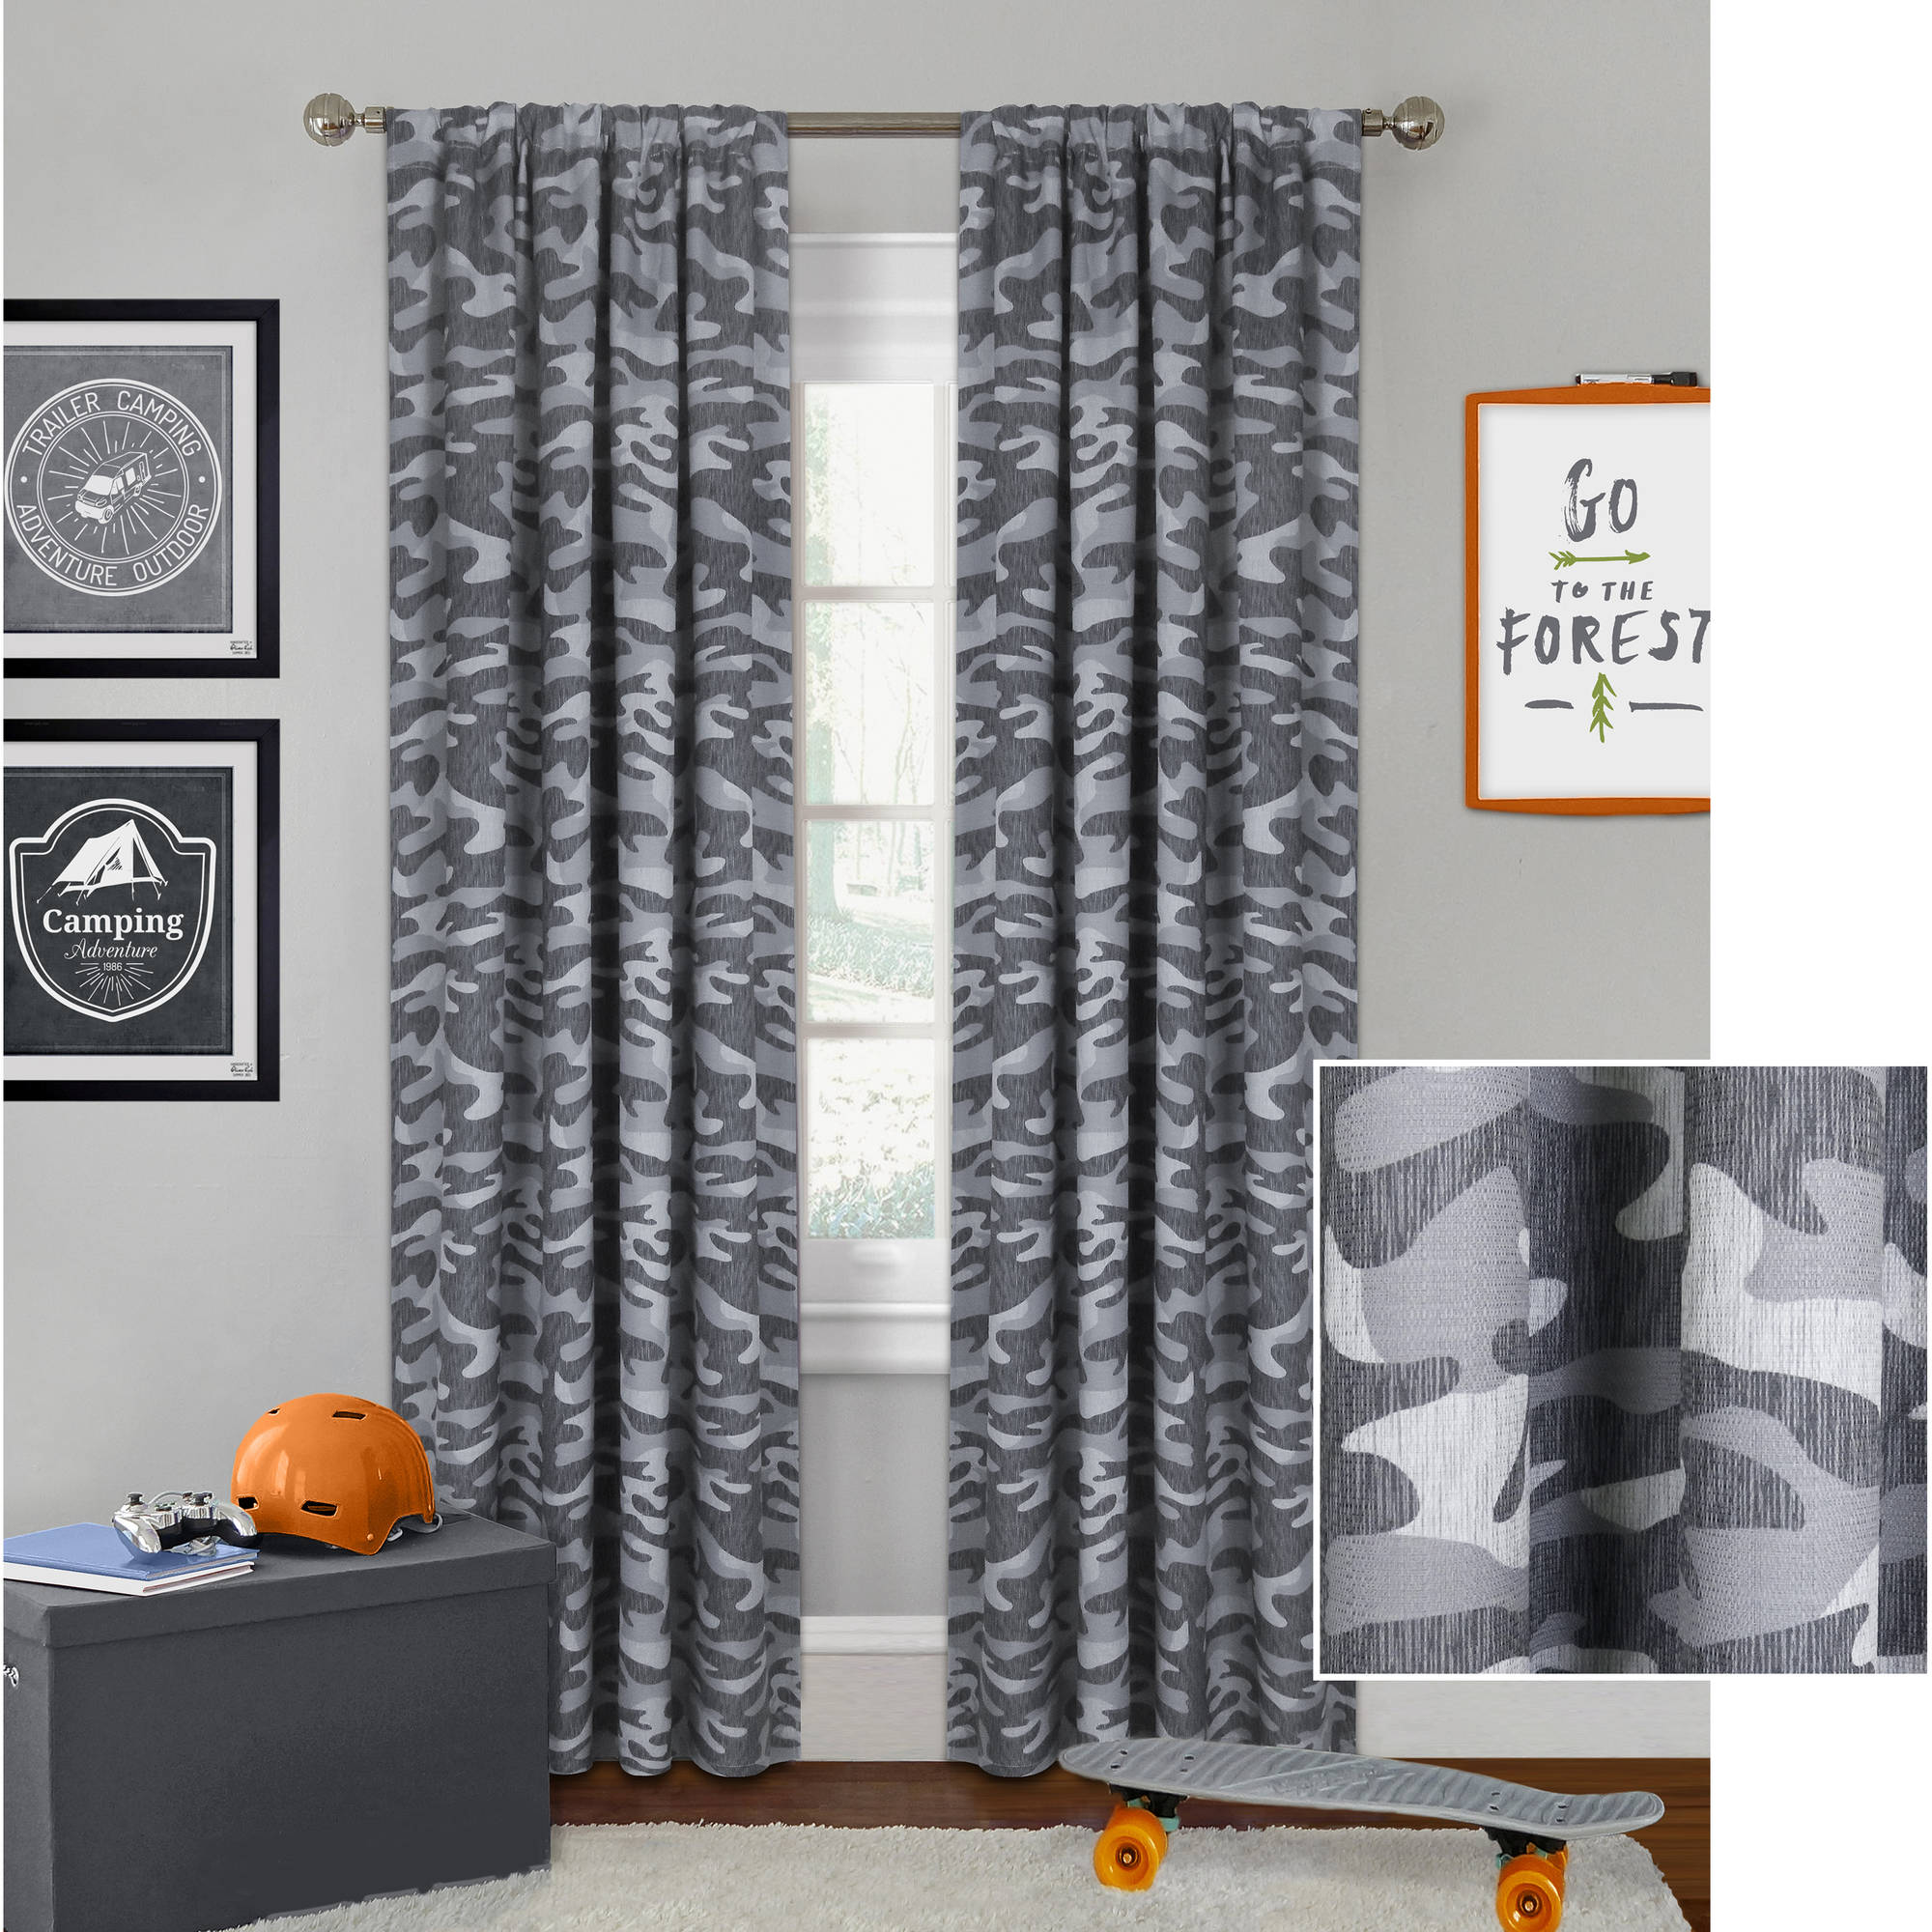 Better Homes and Gardens Camo Curtain Panel